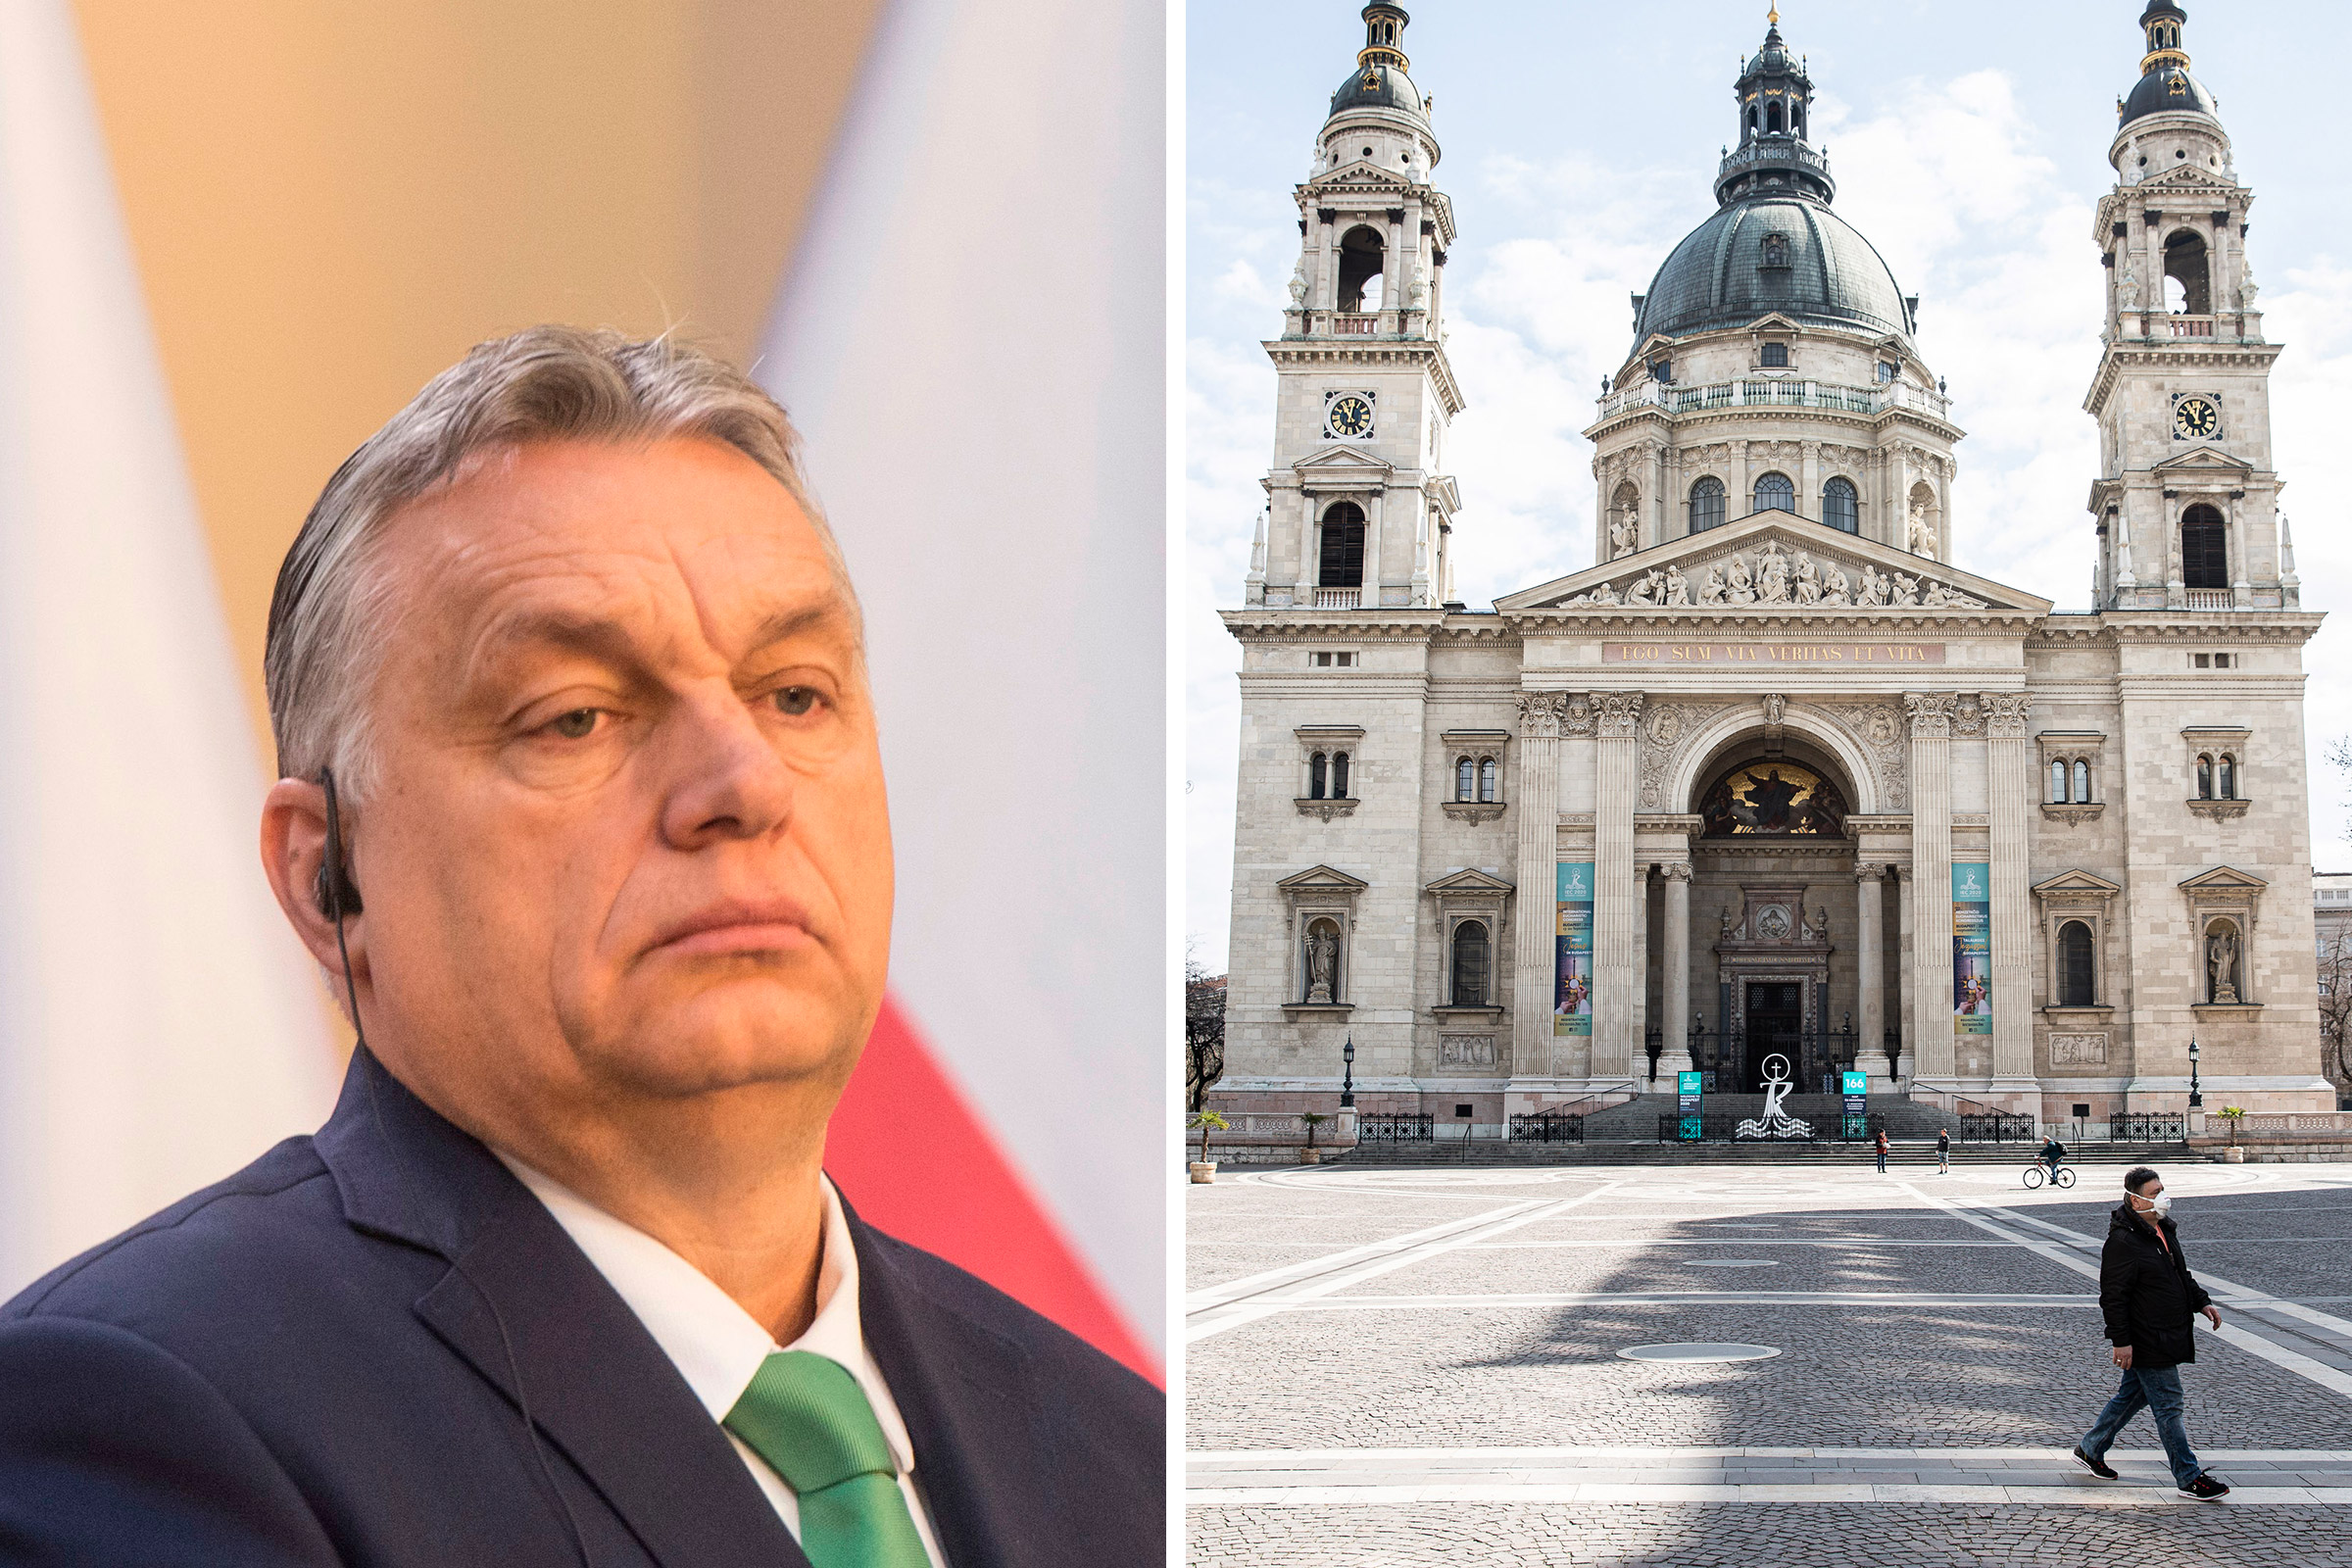 Hungary's Prime Minister Viktor Orban gives a joint press conference on March 4; A pedestrian wearing a protective face mask walks across a deserted square outside St. Stephen's Basilica in Budapest, Hungary on March 31